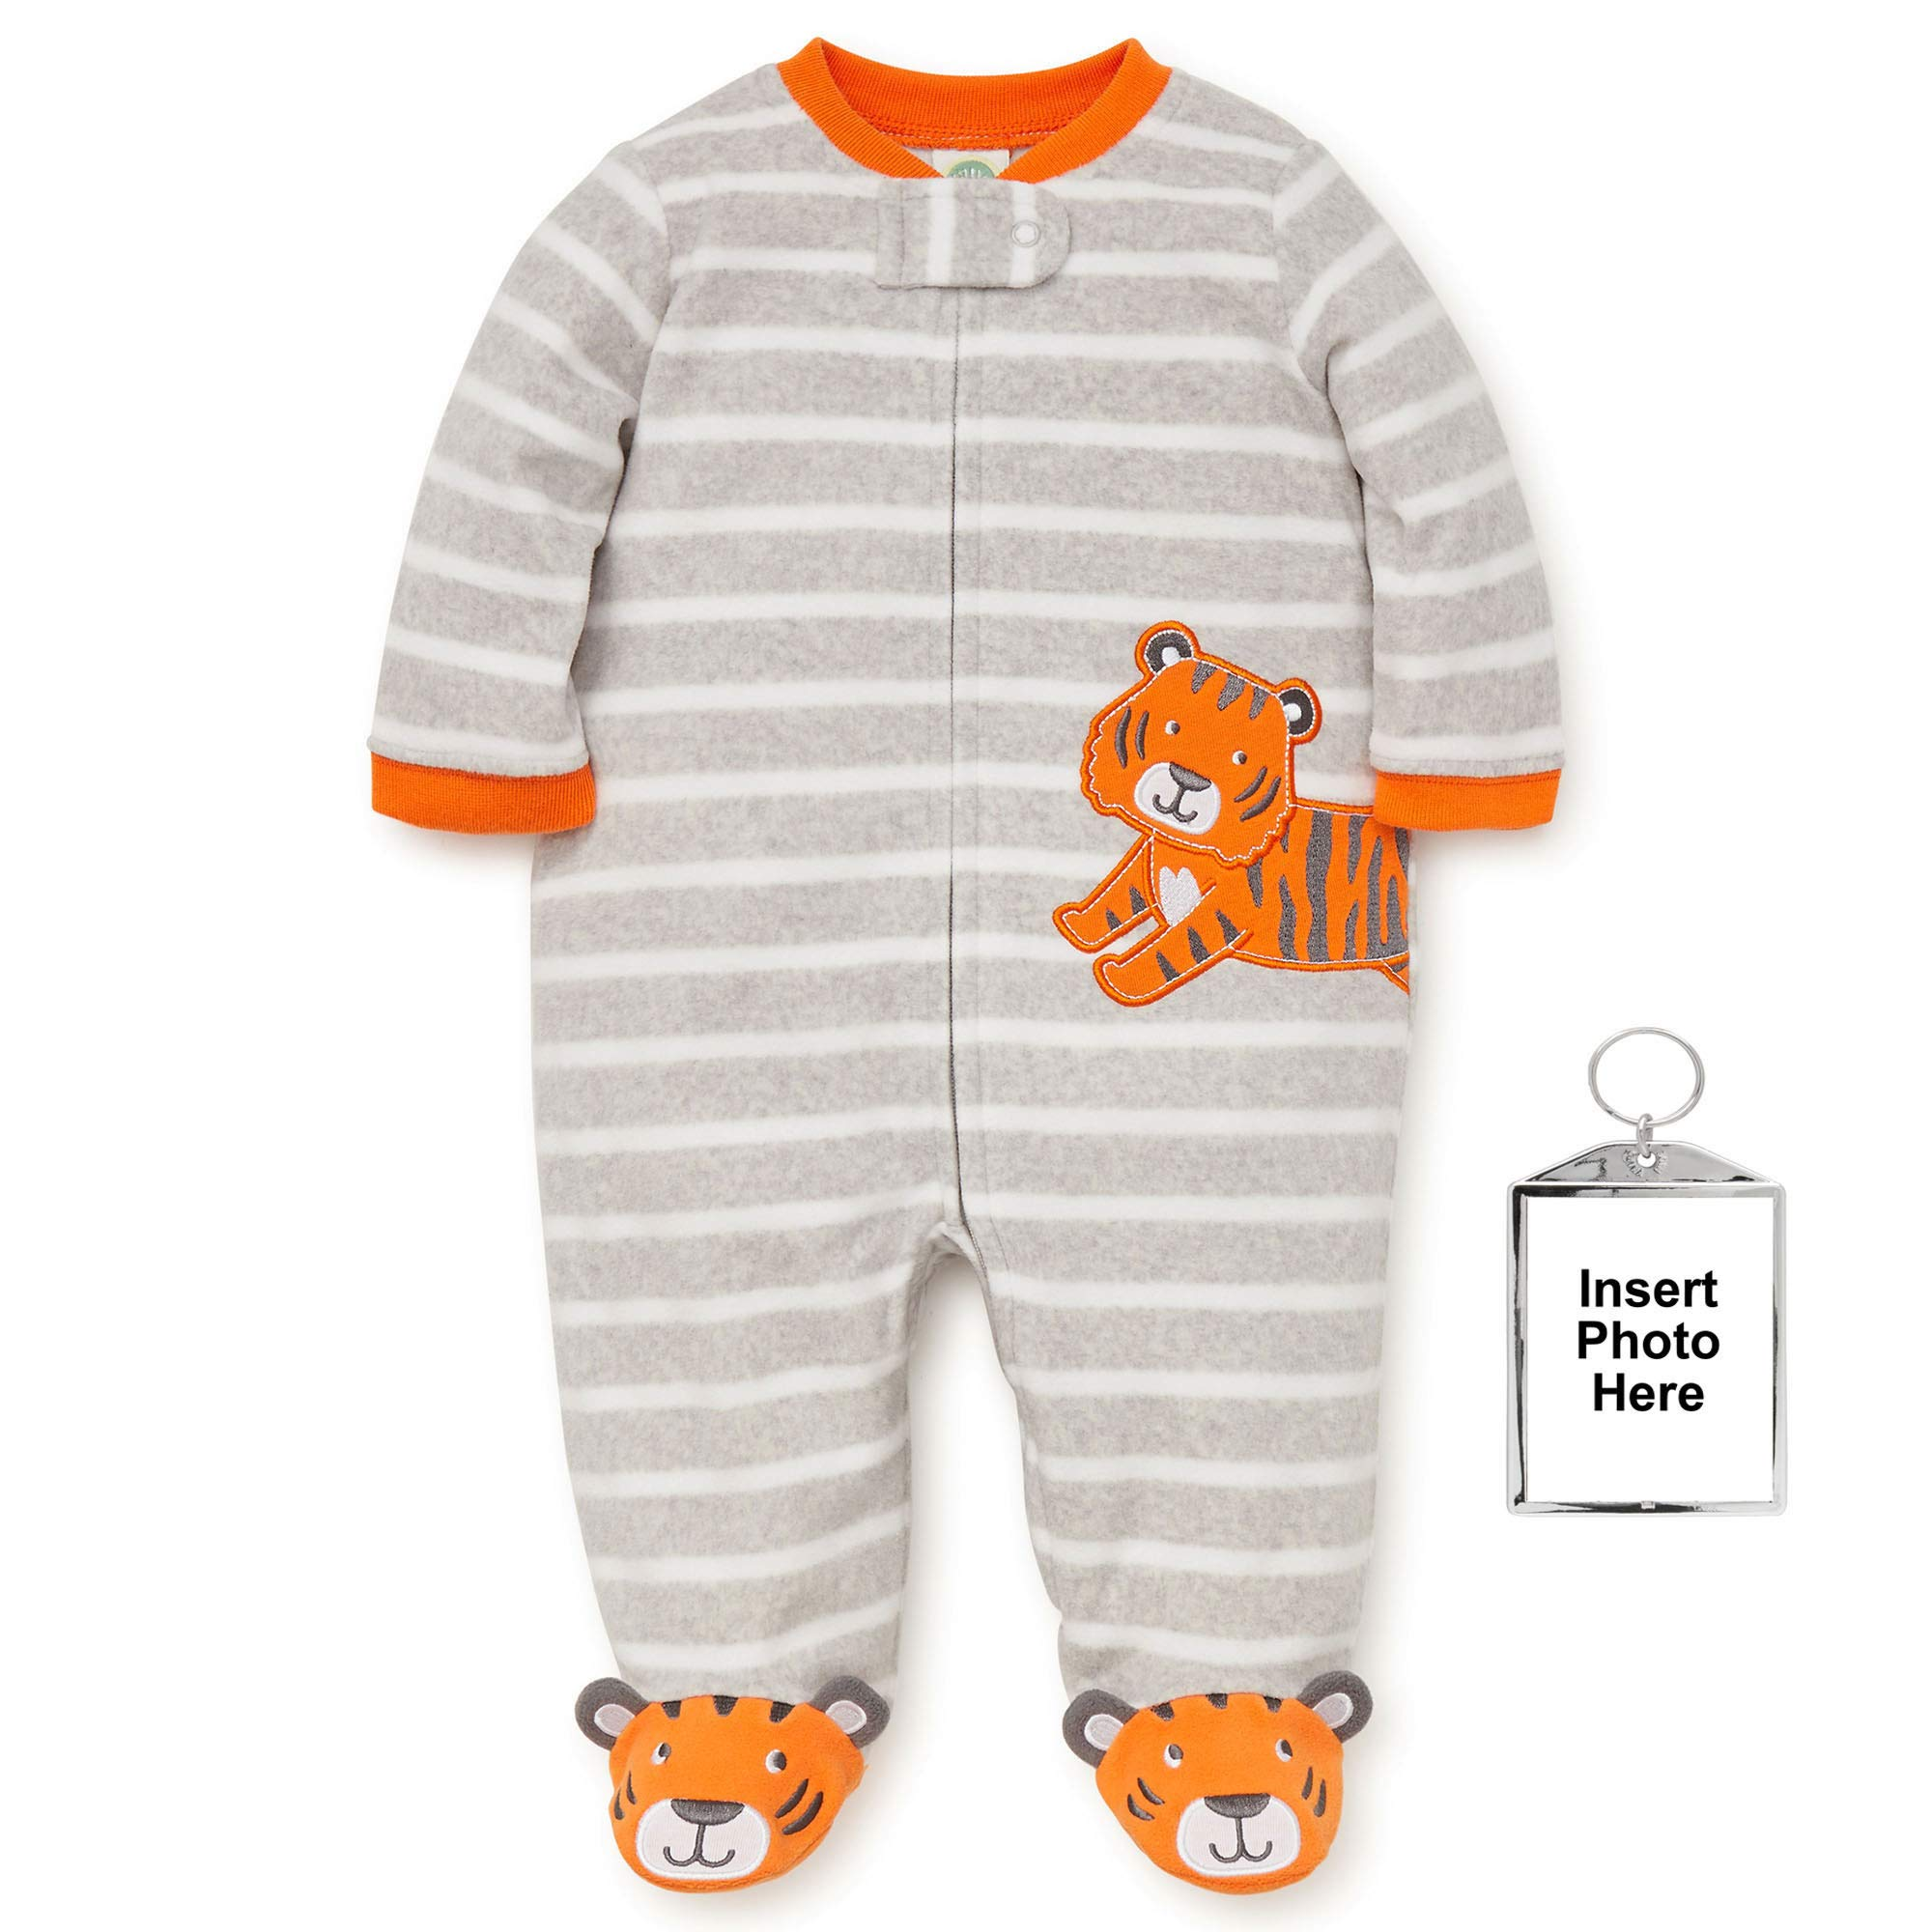 8698416b86 Little Me Winter Fleece Baby Pajamas Footed Blanket Sleeper Footie Orange  Tiger 18 Month